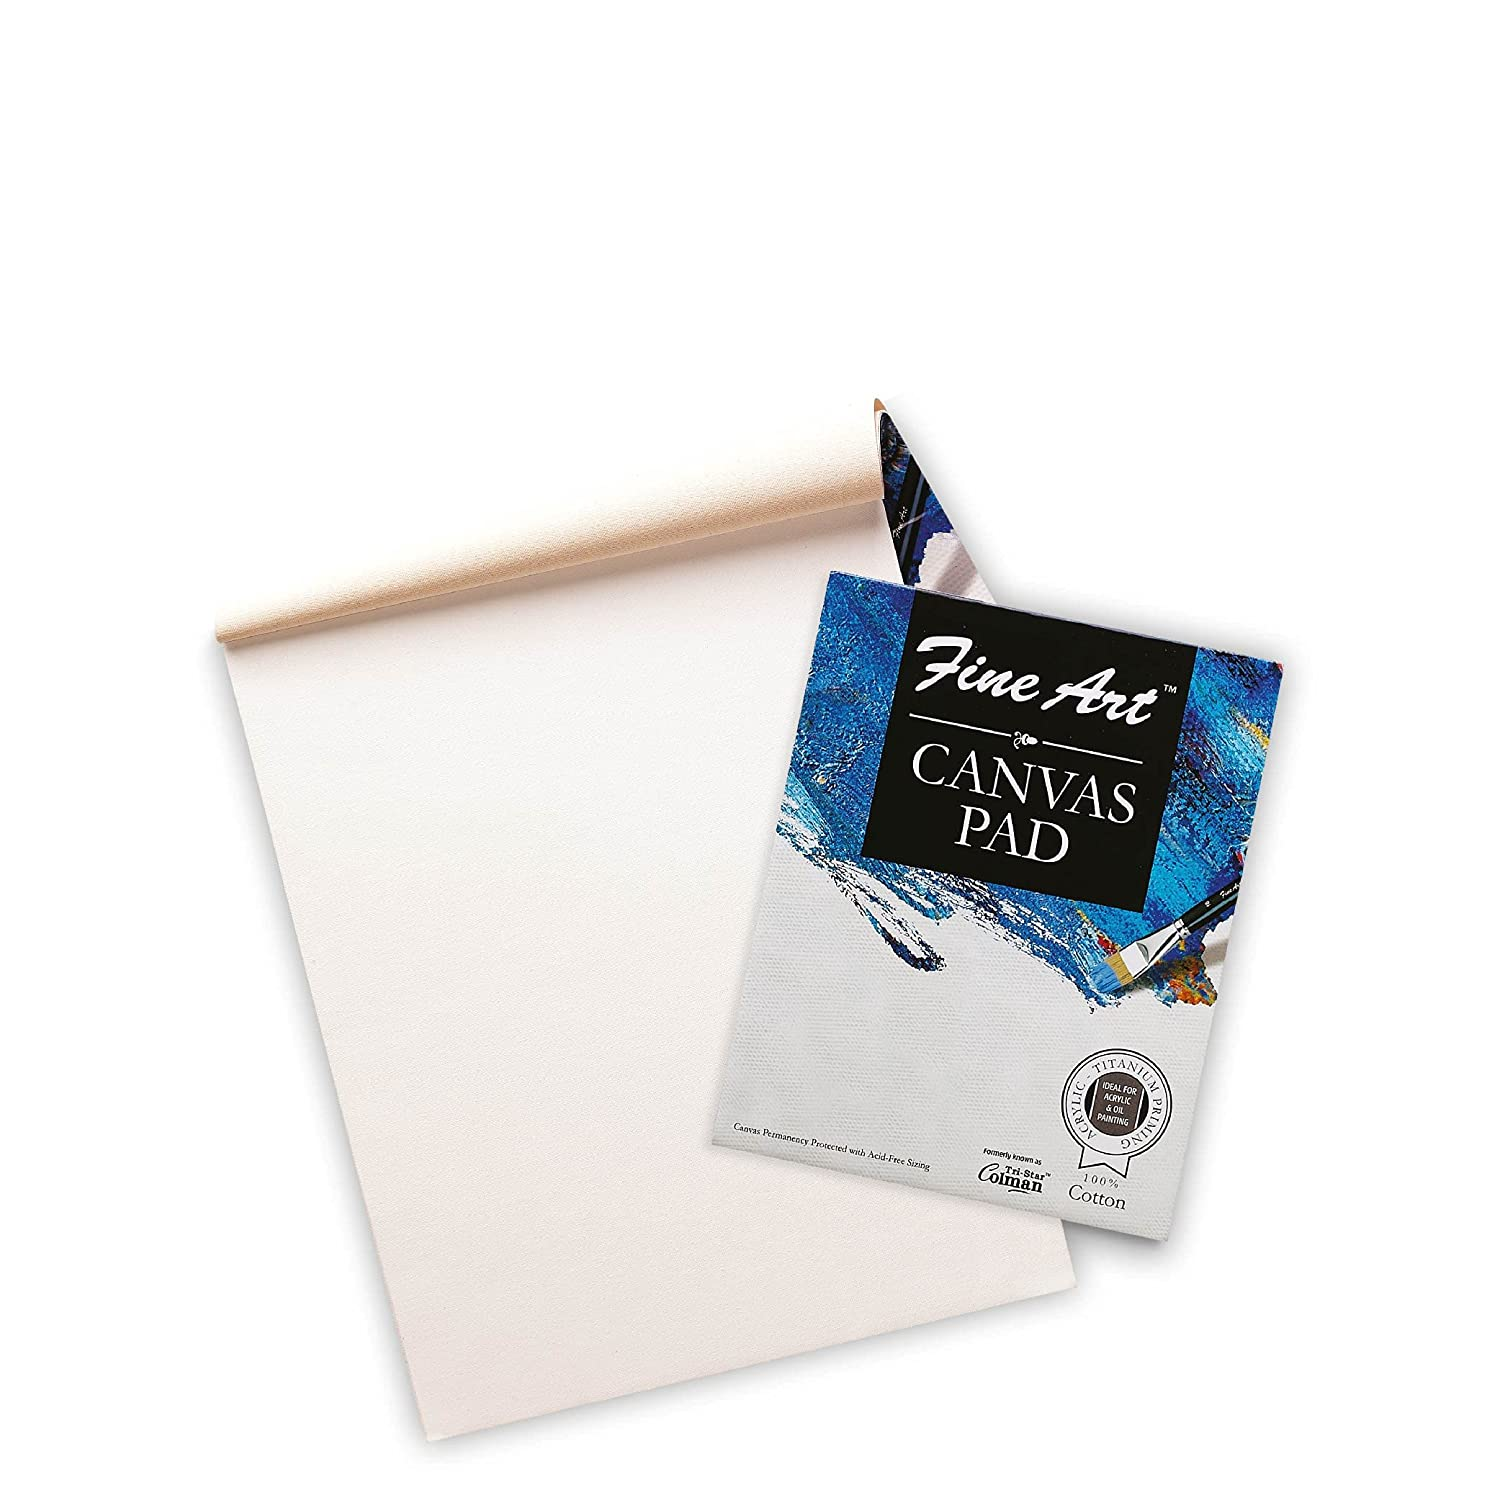 Fine Art Heavy-Weight Acrylic Painting Canvas Pad (9 X 12 Inch)